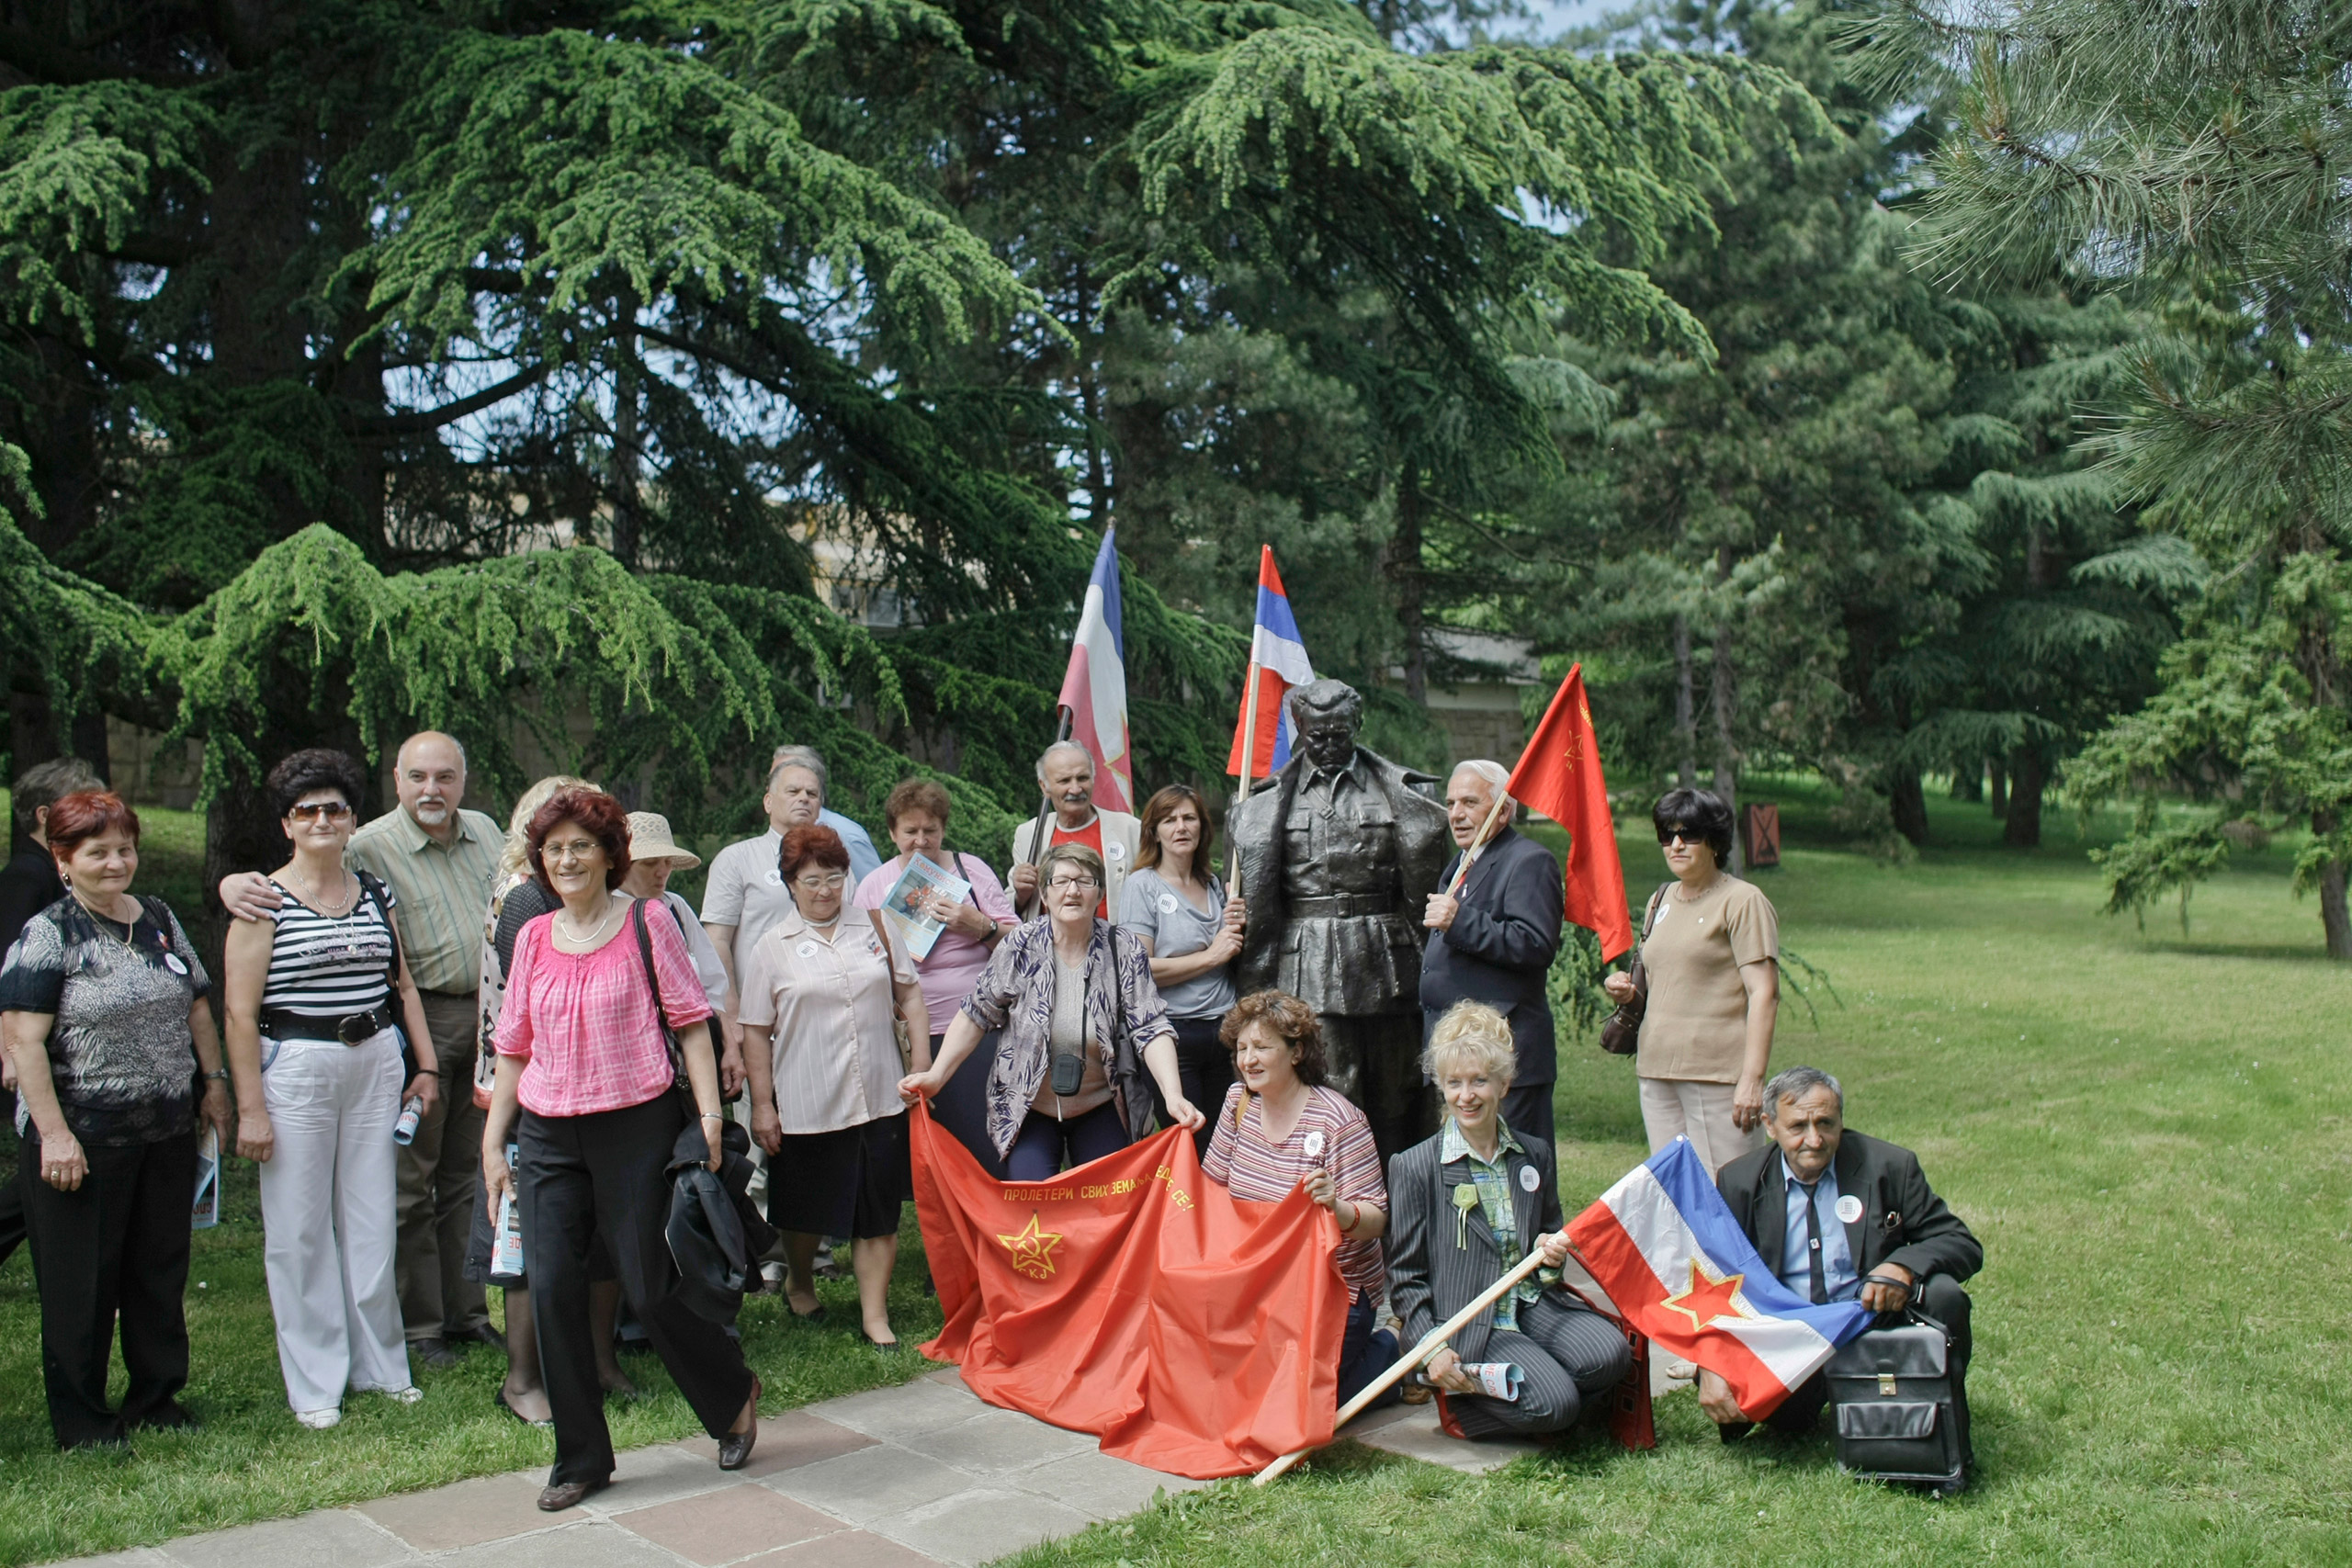 Declared Yugoslavs and Yugo-nostalgics gather at the late Yugoslav strongman Josip Broz Tito's memorial complex, Belgrade, Serbia, May 25, 2010.